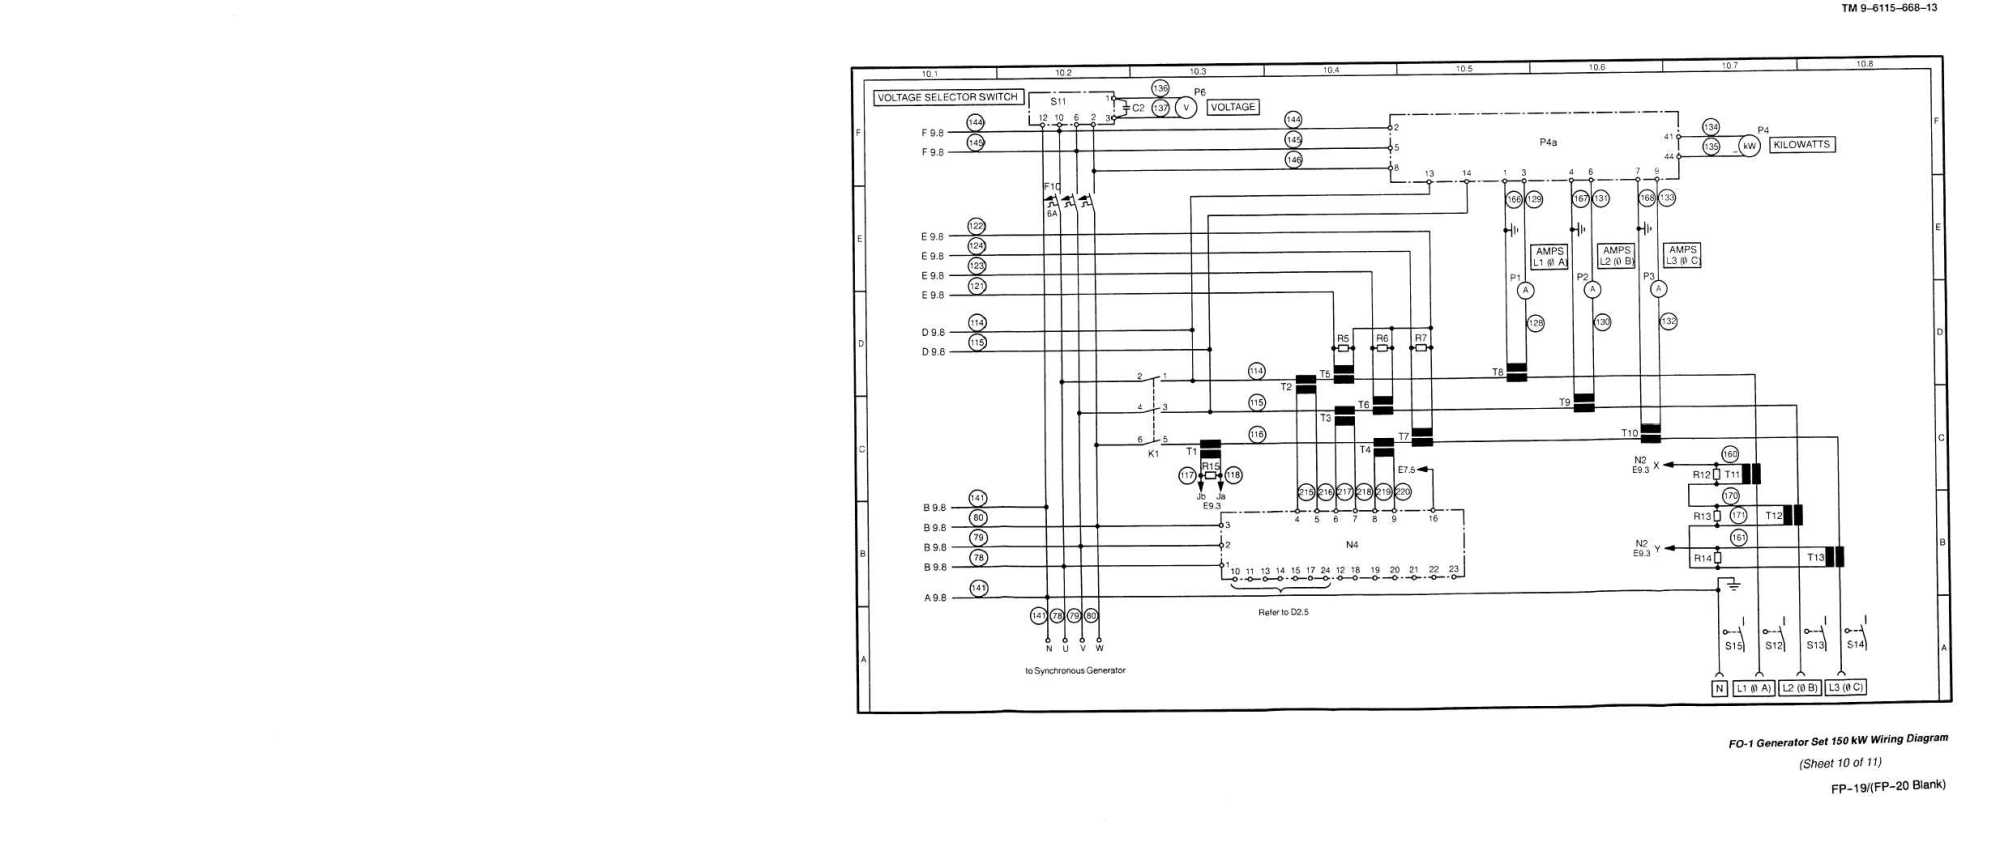 hight resolution of generator set 150kw wiring diagram sheet 10 of 11